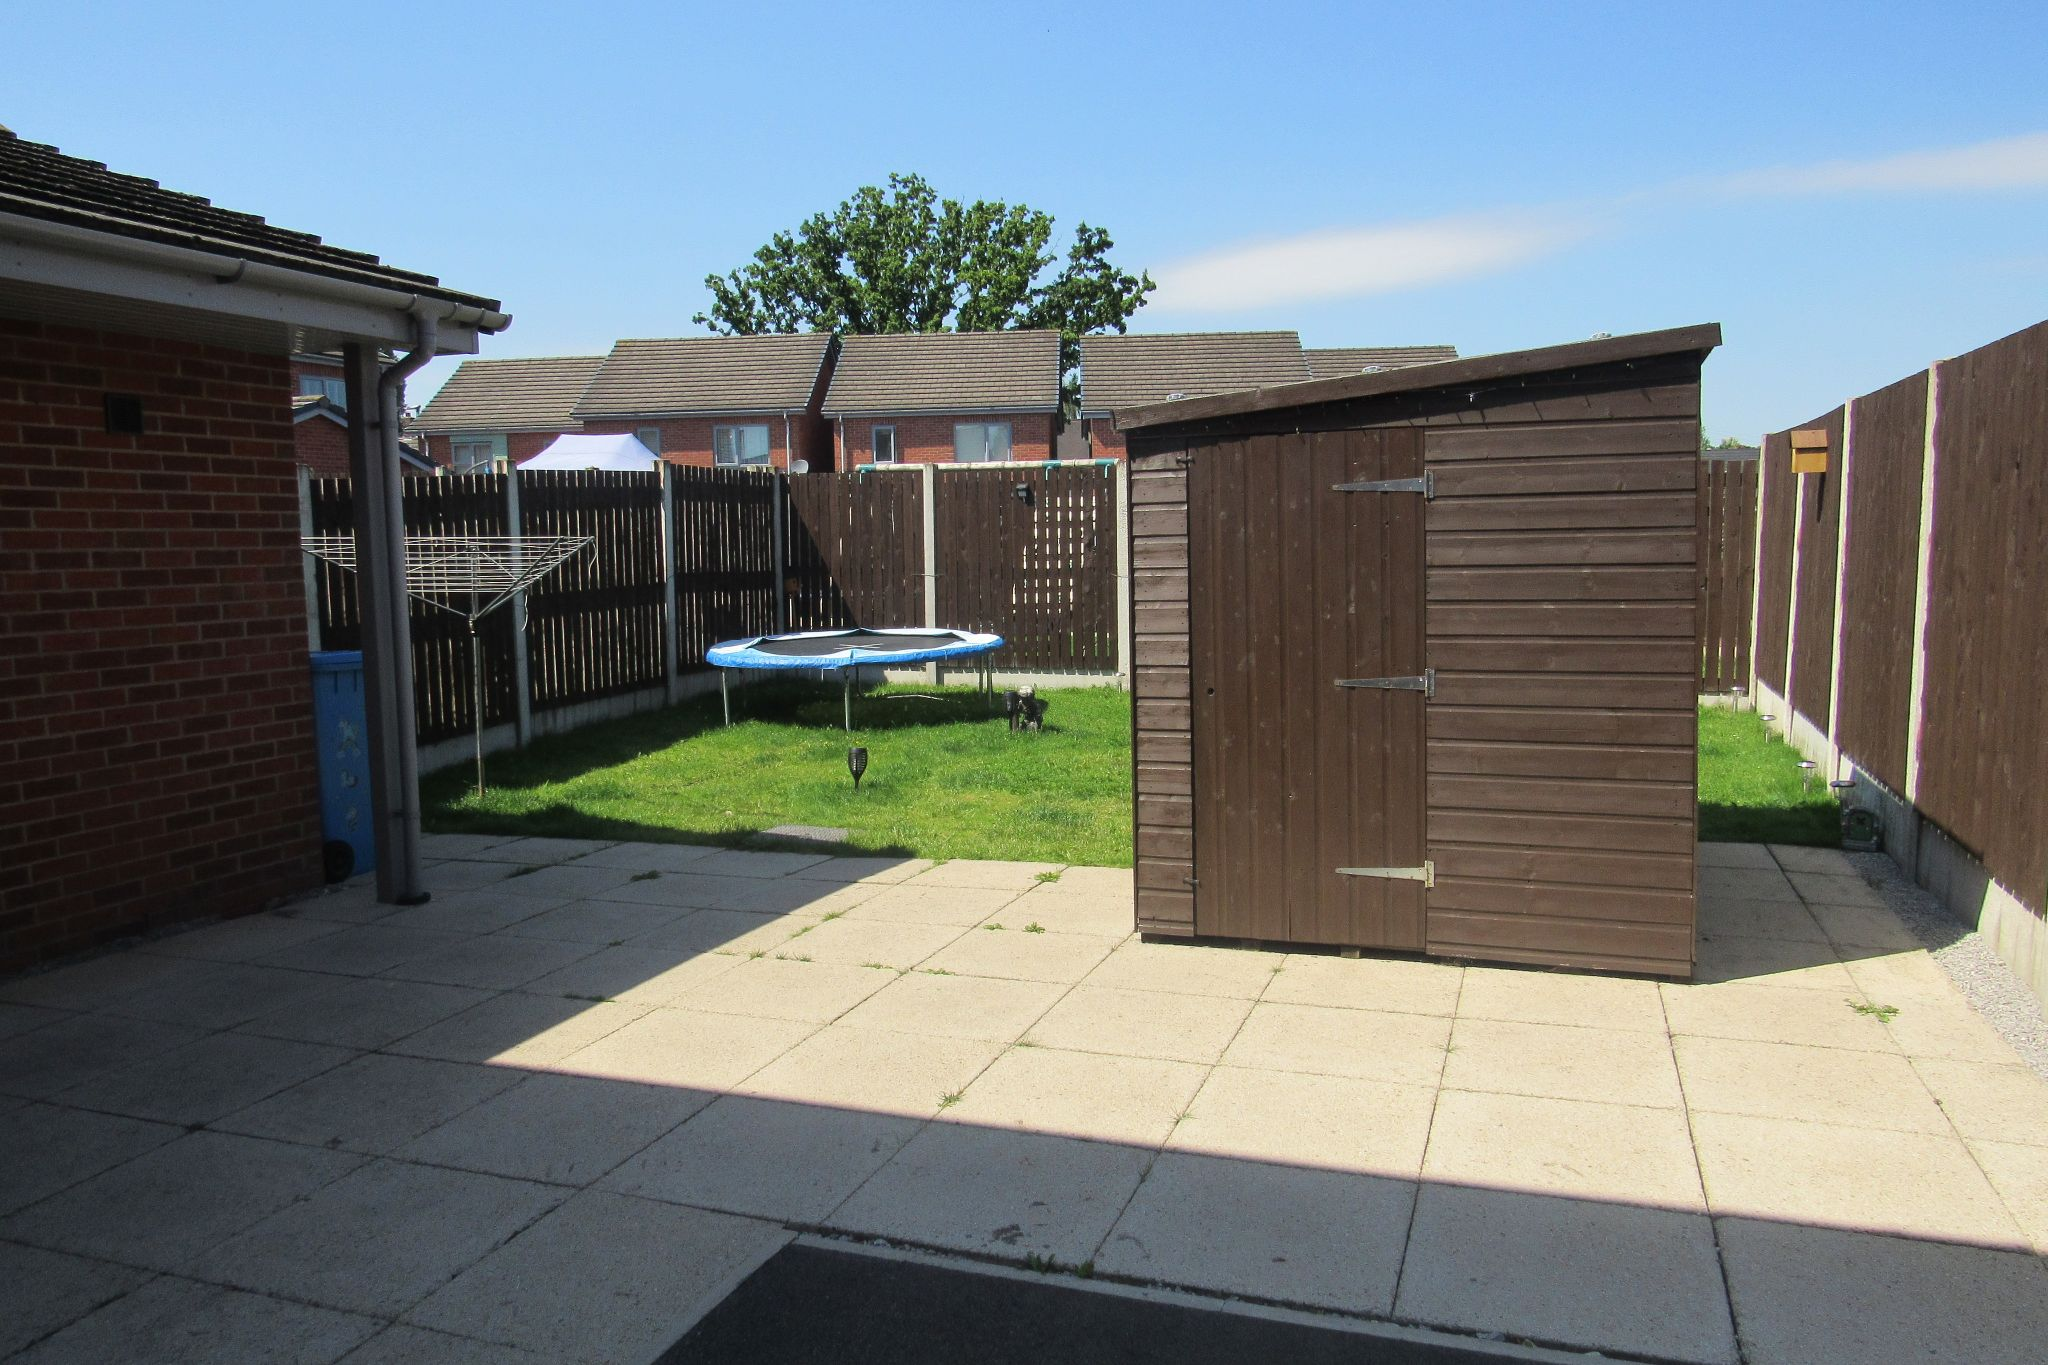 3 bedroom semi-detached house SSTC in Manchester - Photograph 17.